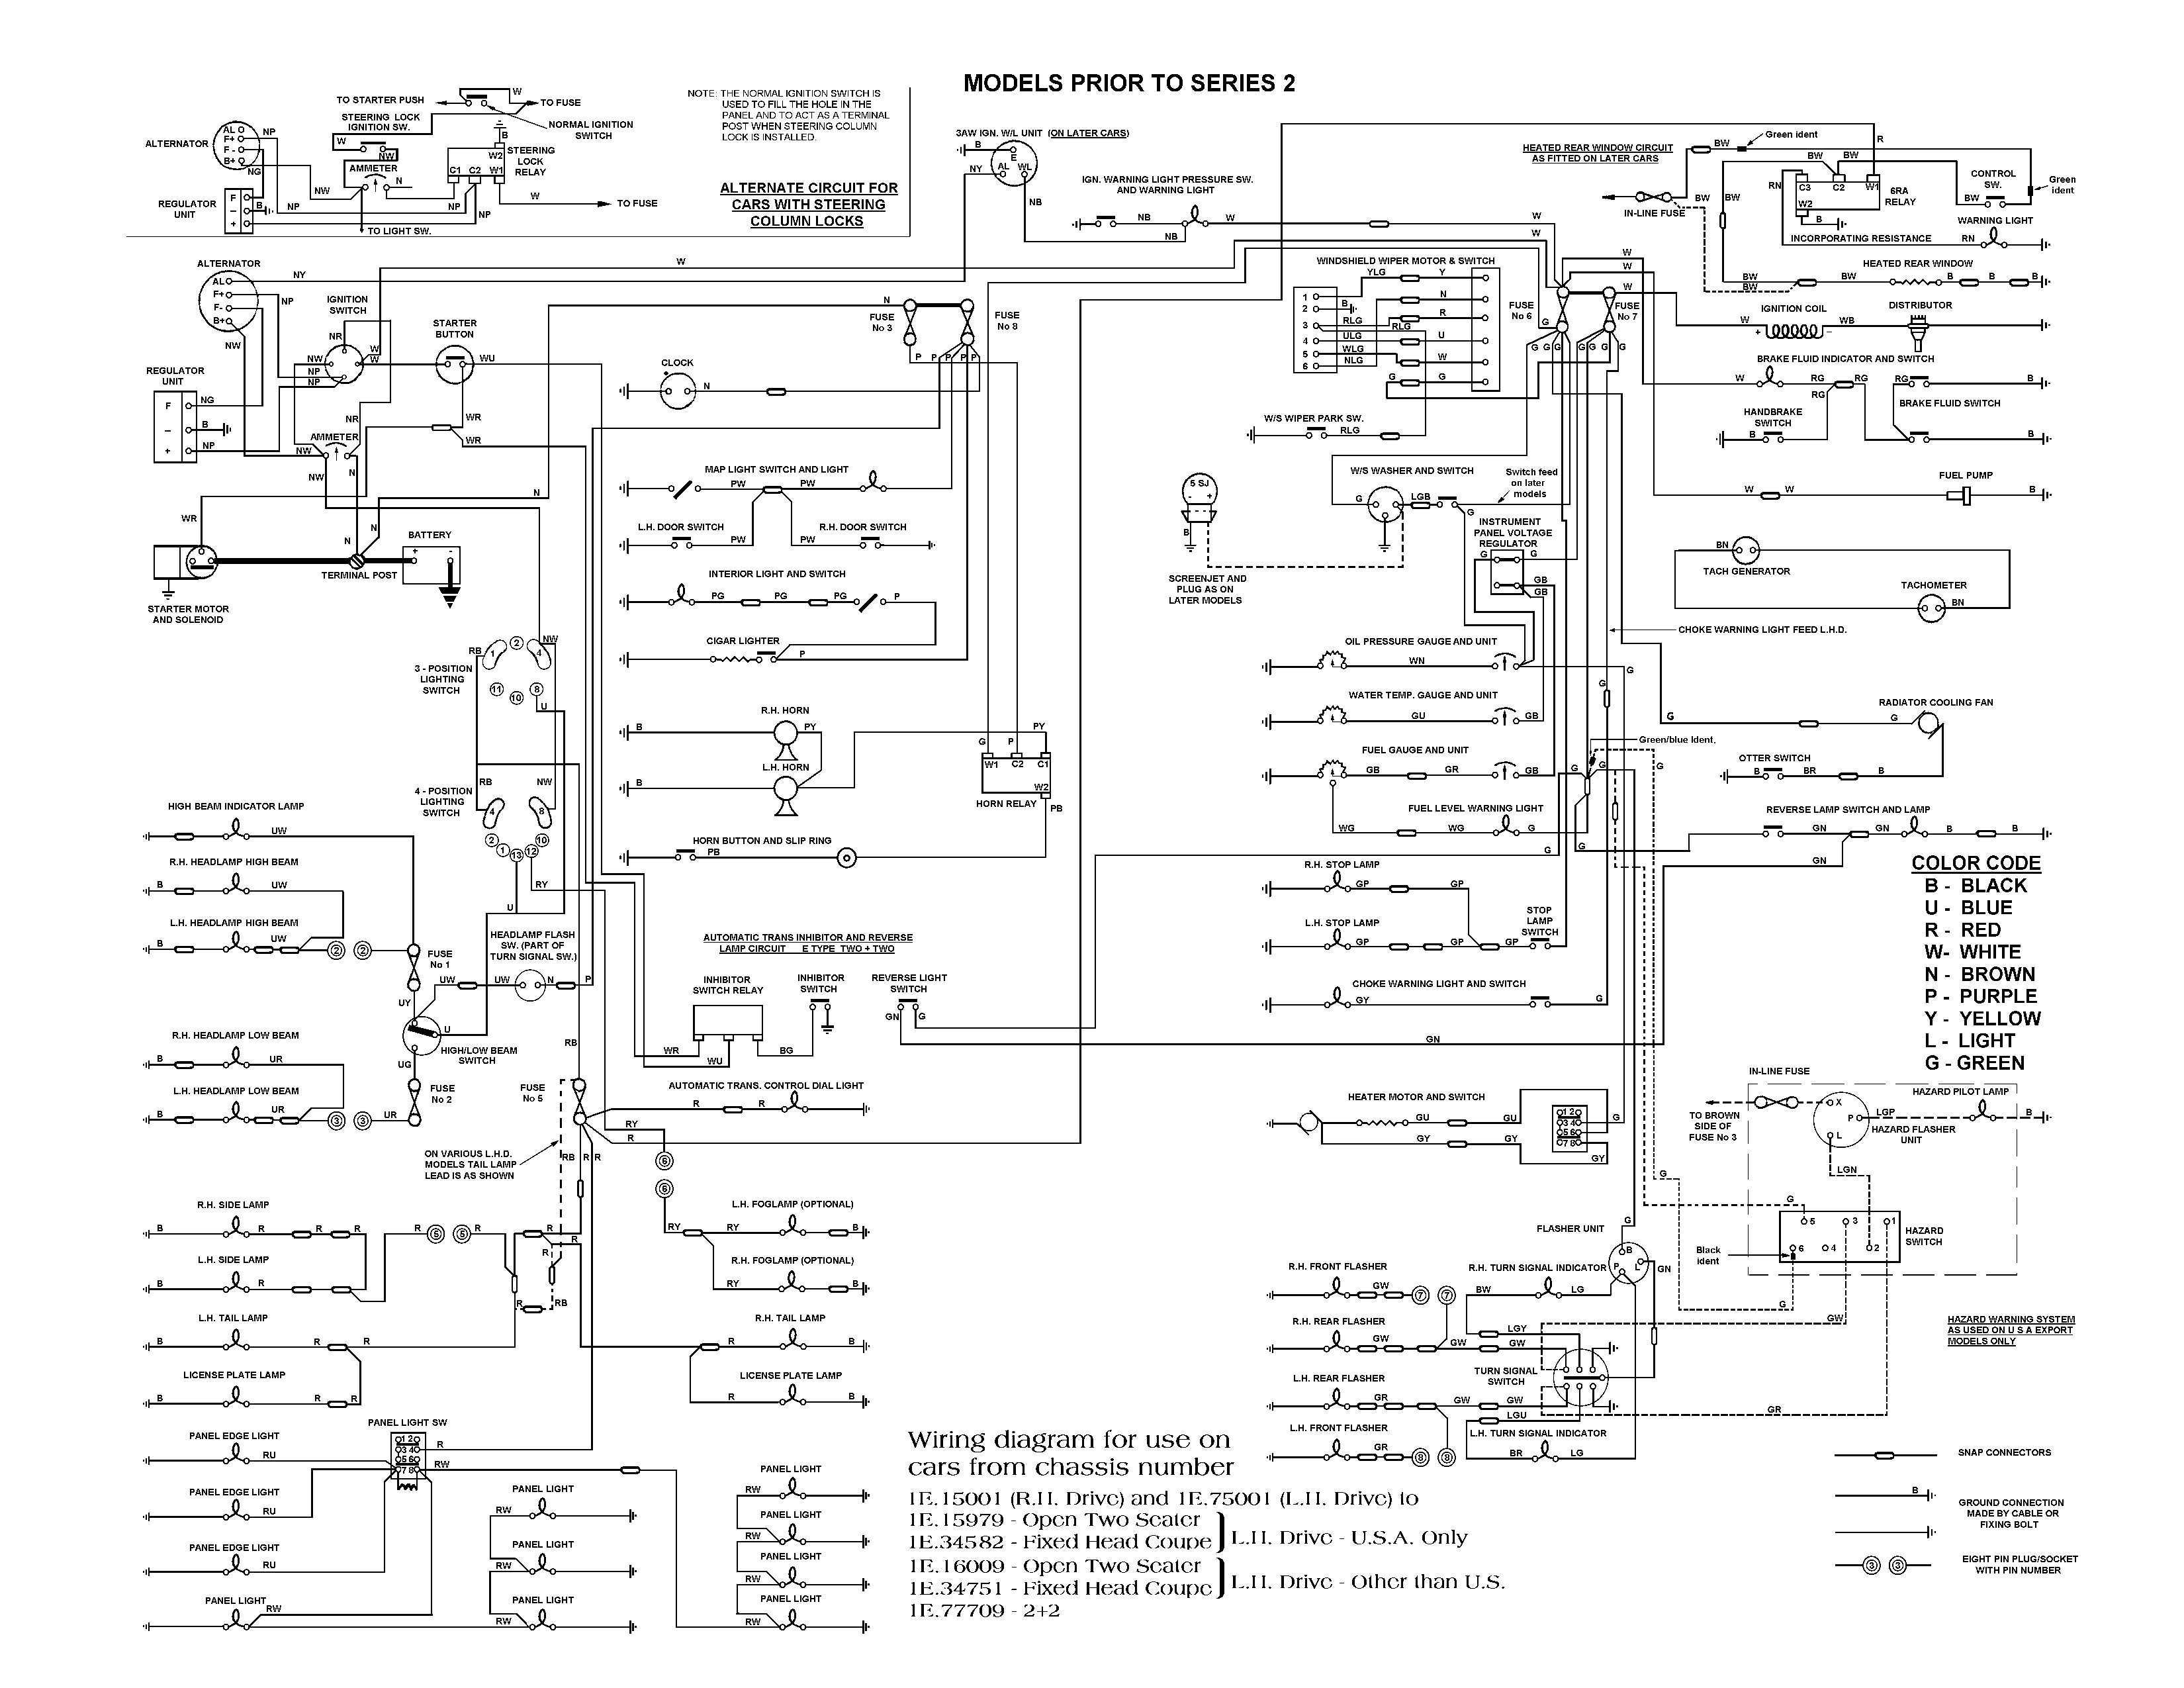 best wiring diagram software Collection-Wiring Diagram software Open source Best Ponent Wire Symbols Alphabet Od1706a0 Elcrost E Type Fuel Temp 12-t